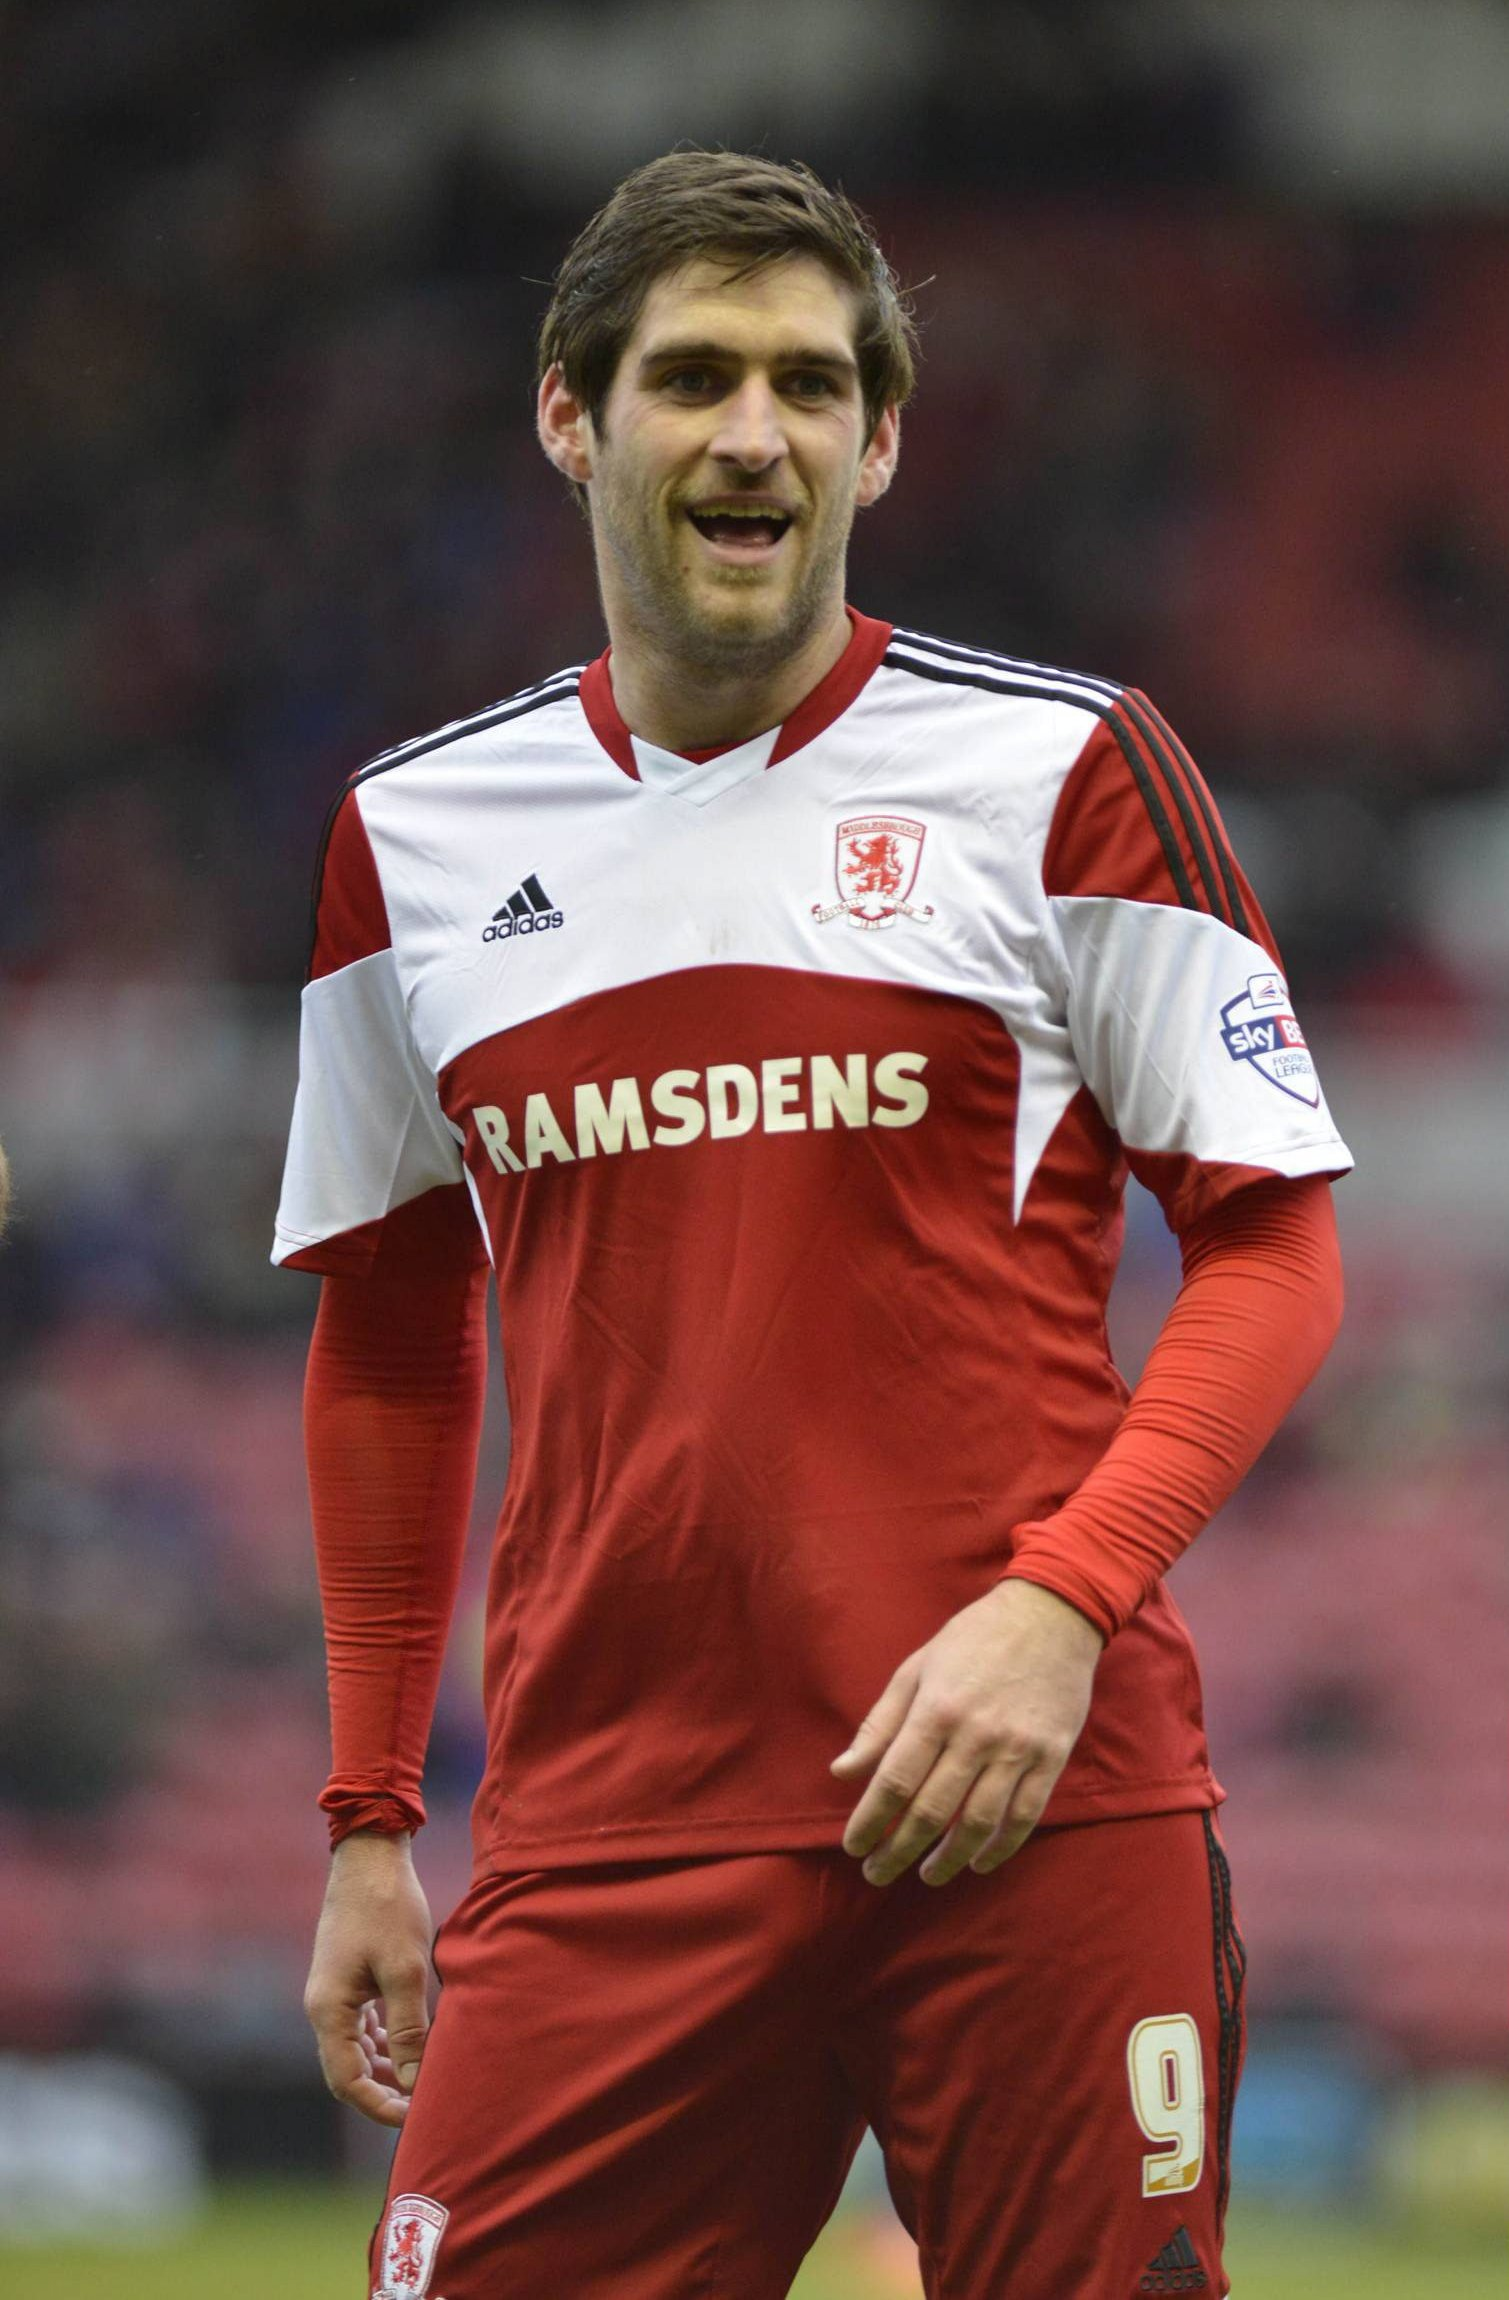 LOAN OVER: Danny Graham played the final game of his loan spell from Sunderland as Middlesbrough beat Yeovil 4-1 at the weekend